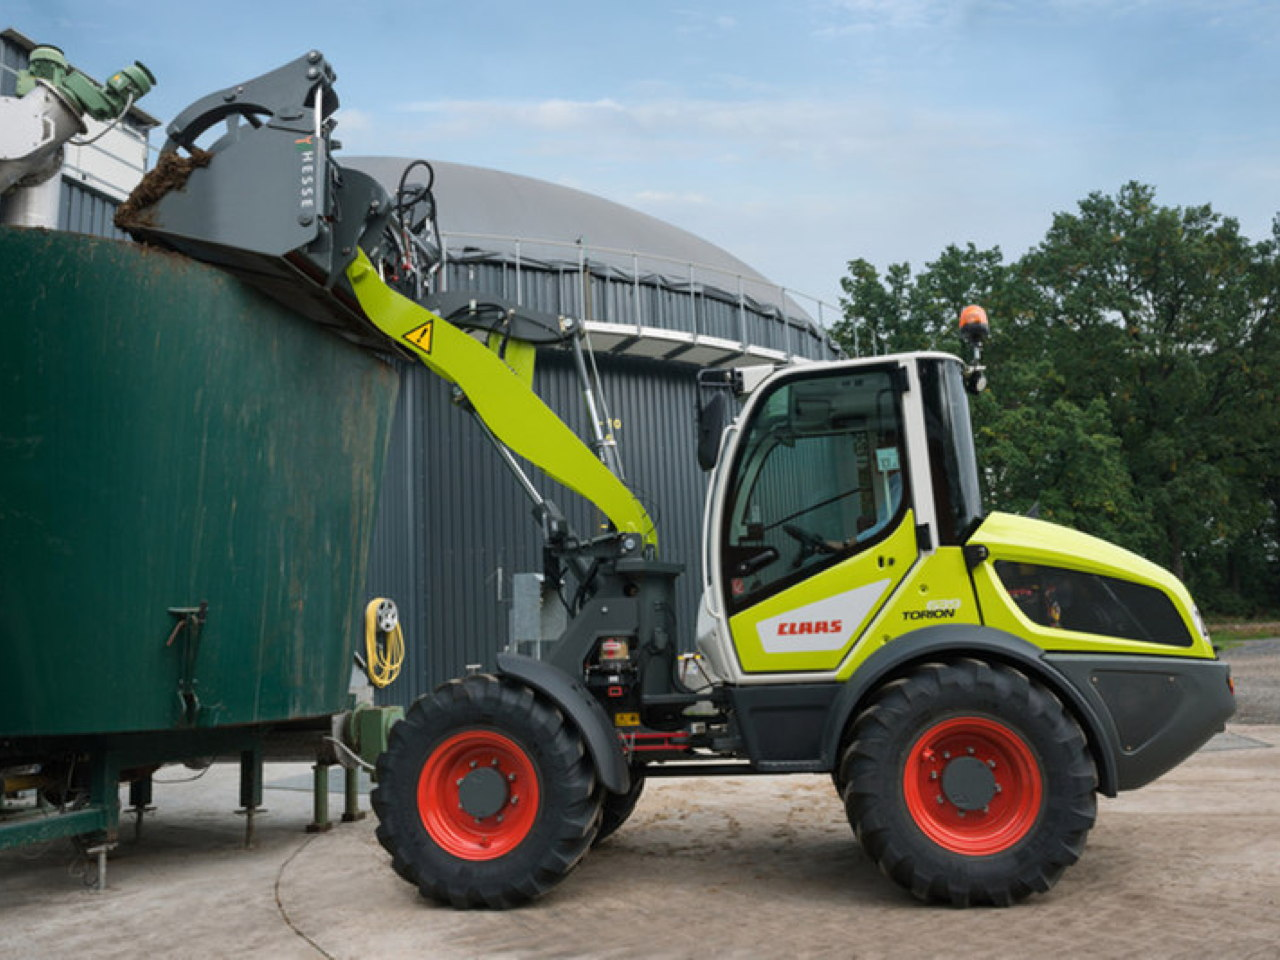 Claas Torion 639-535 Torion 639